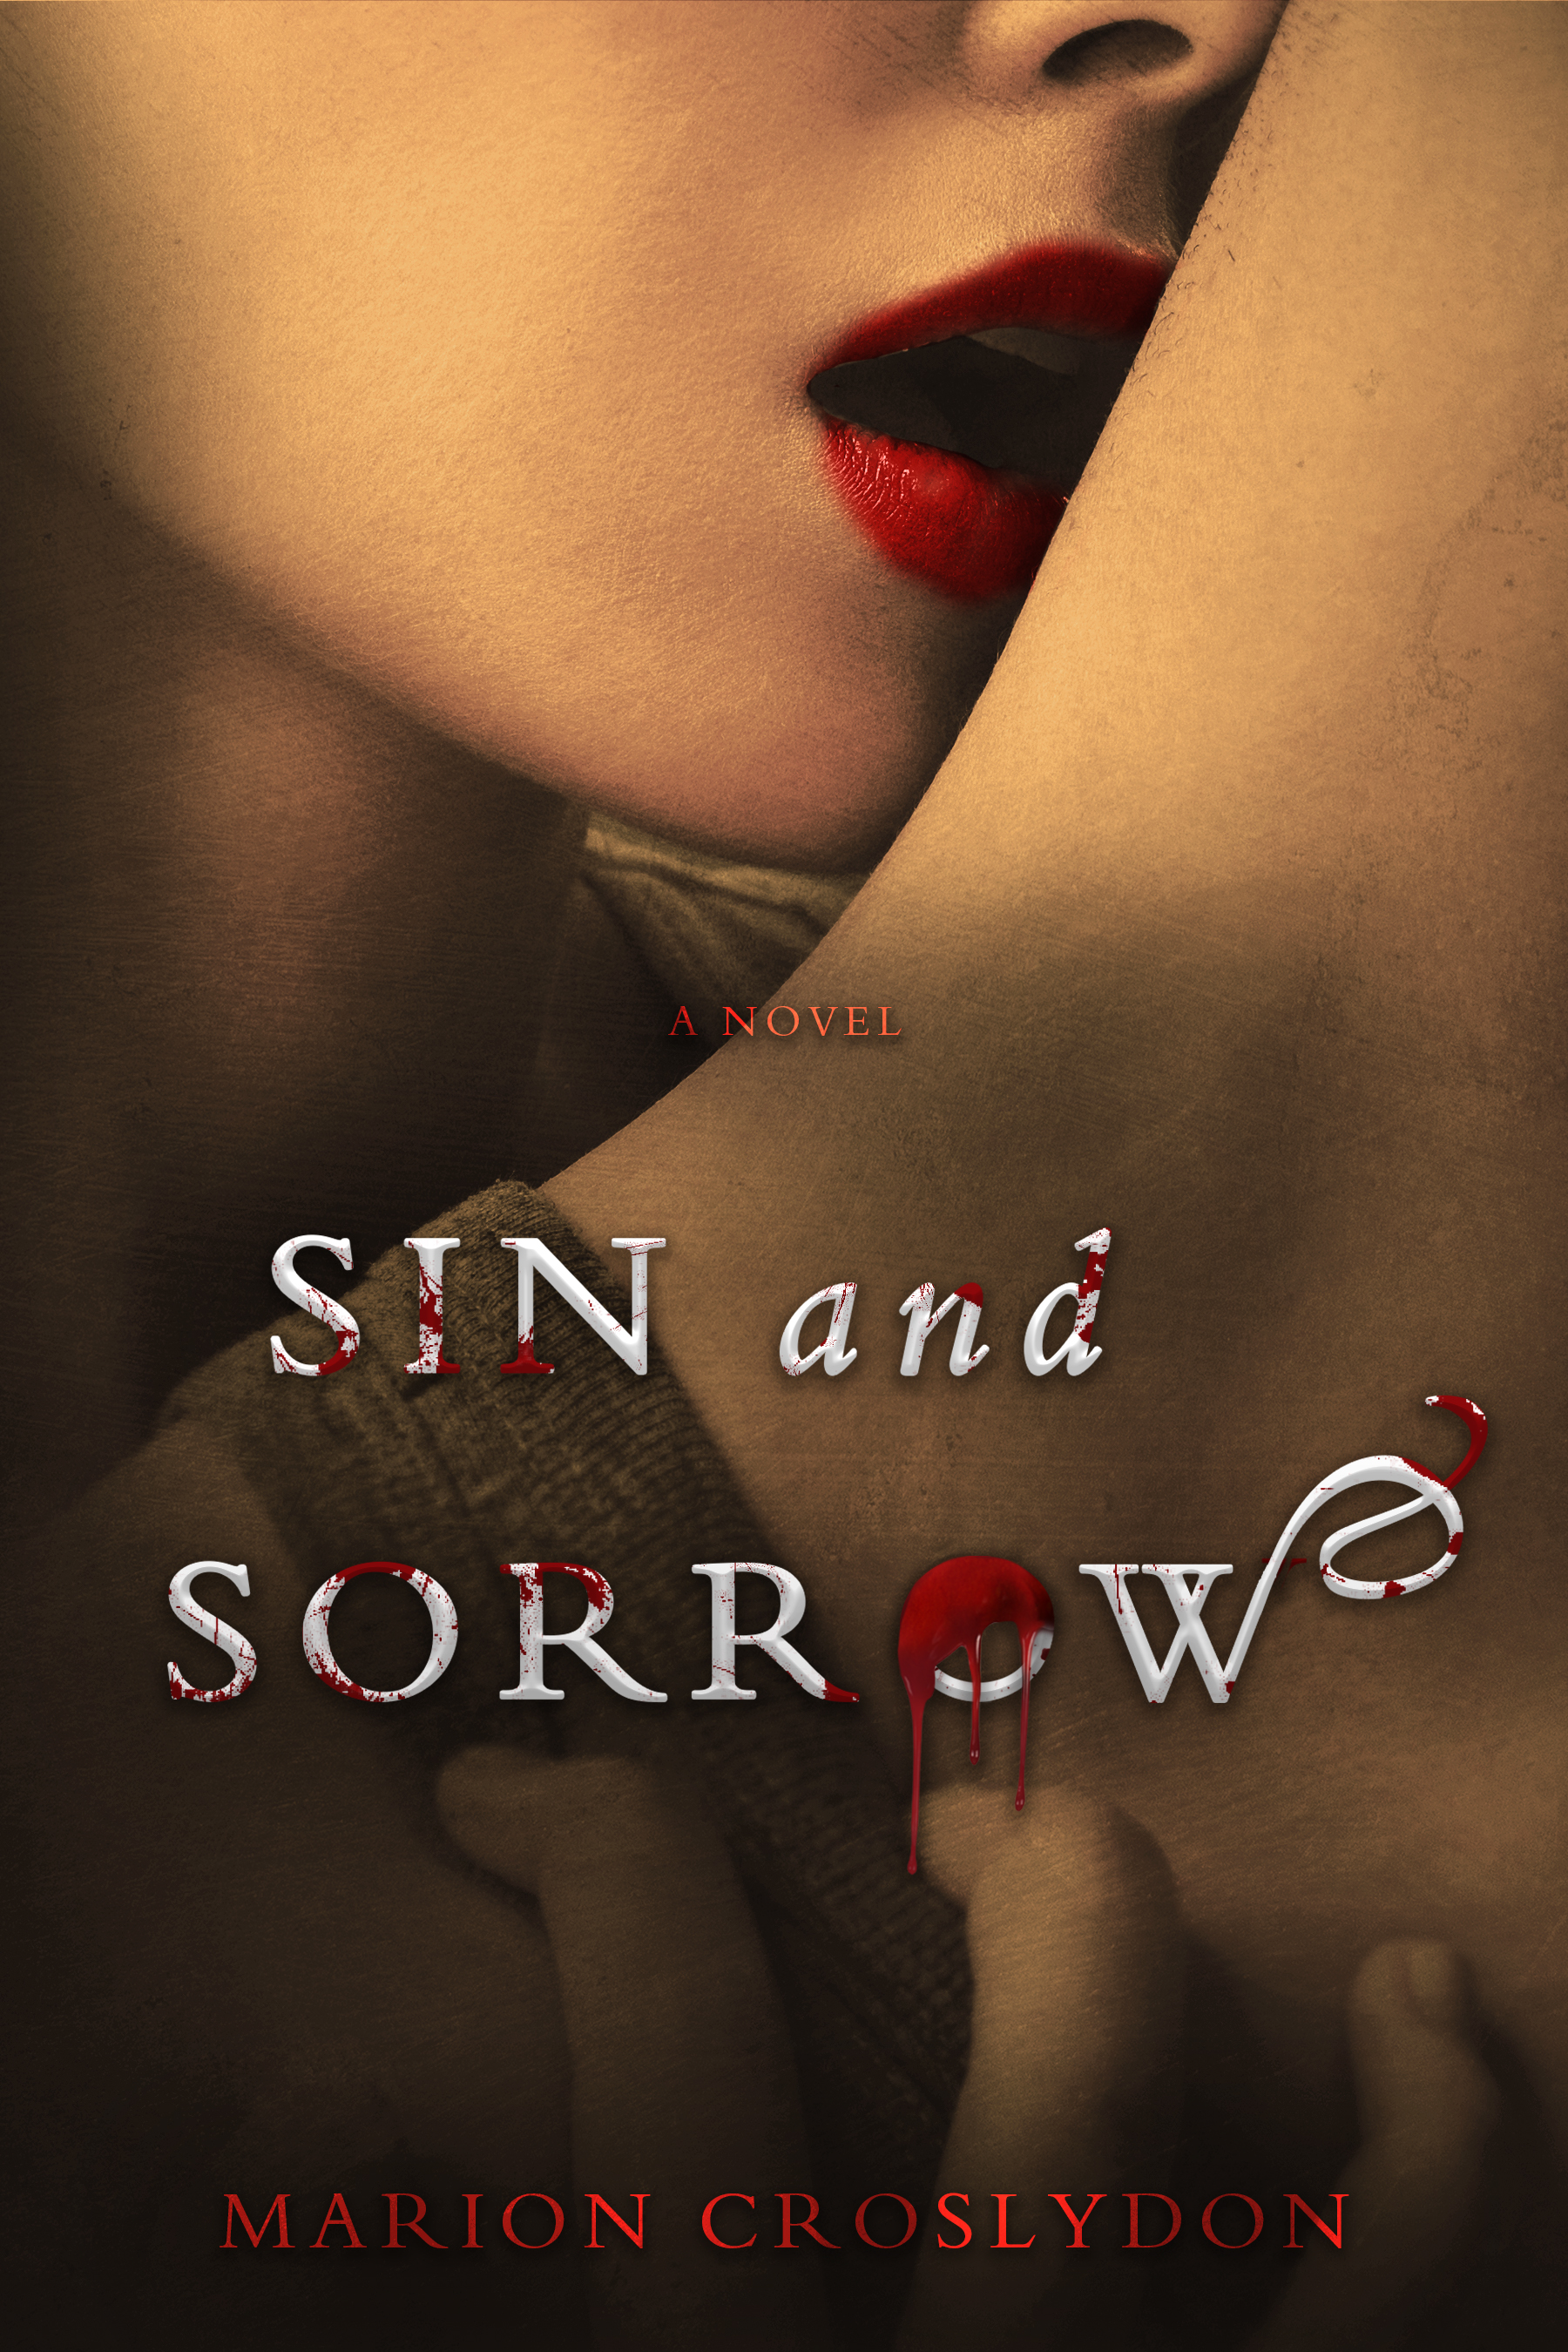 SIn and Sorrw by Marion Croslydon